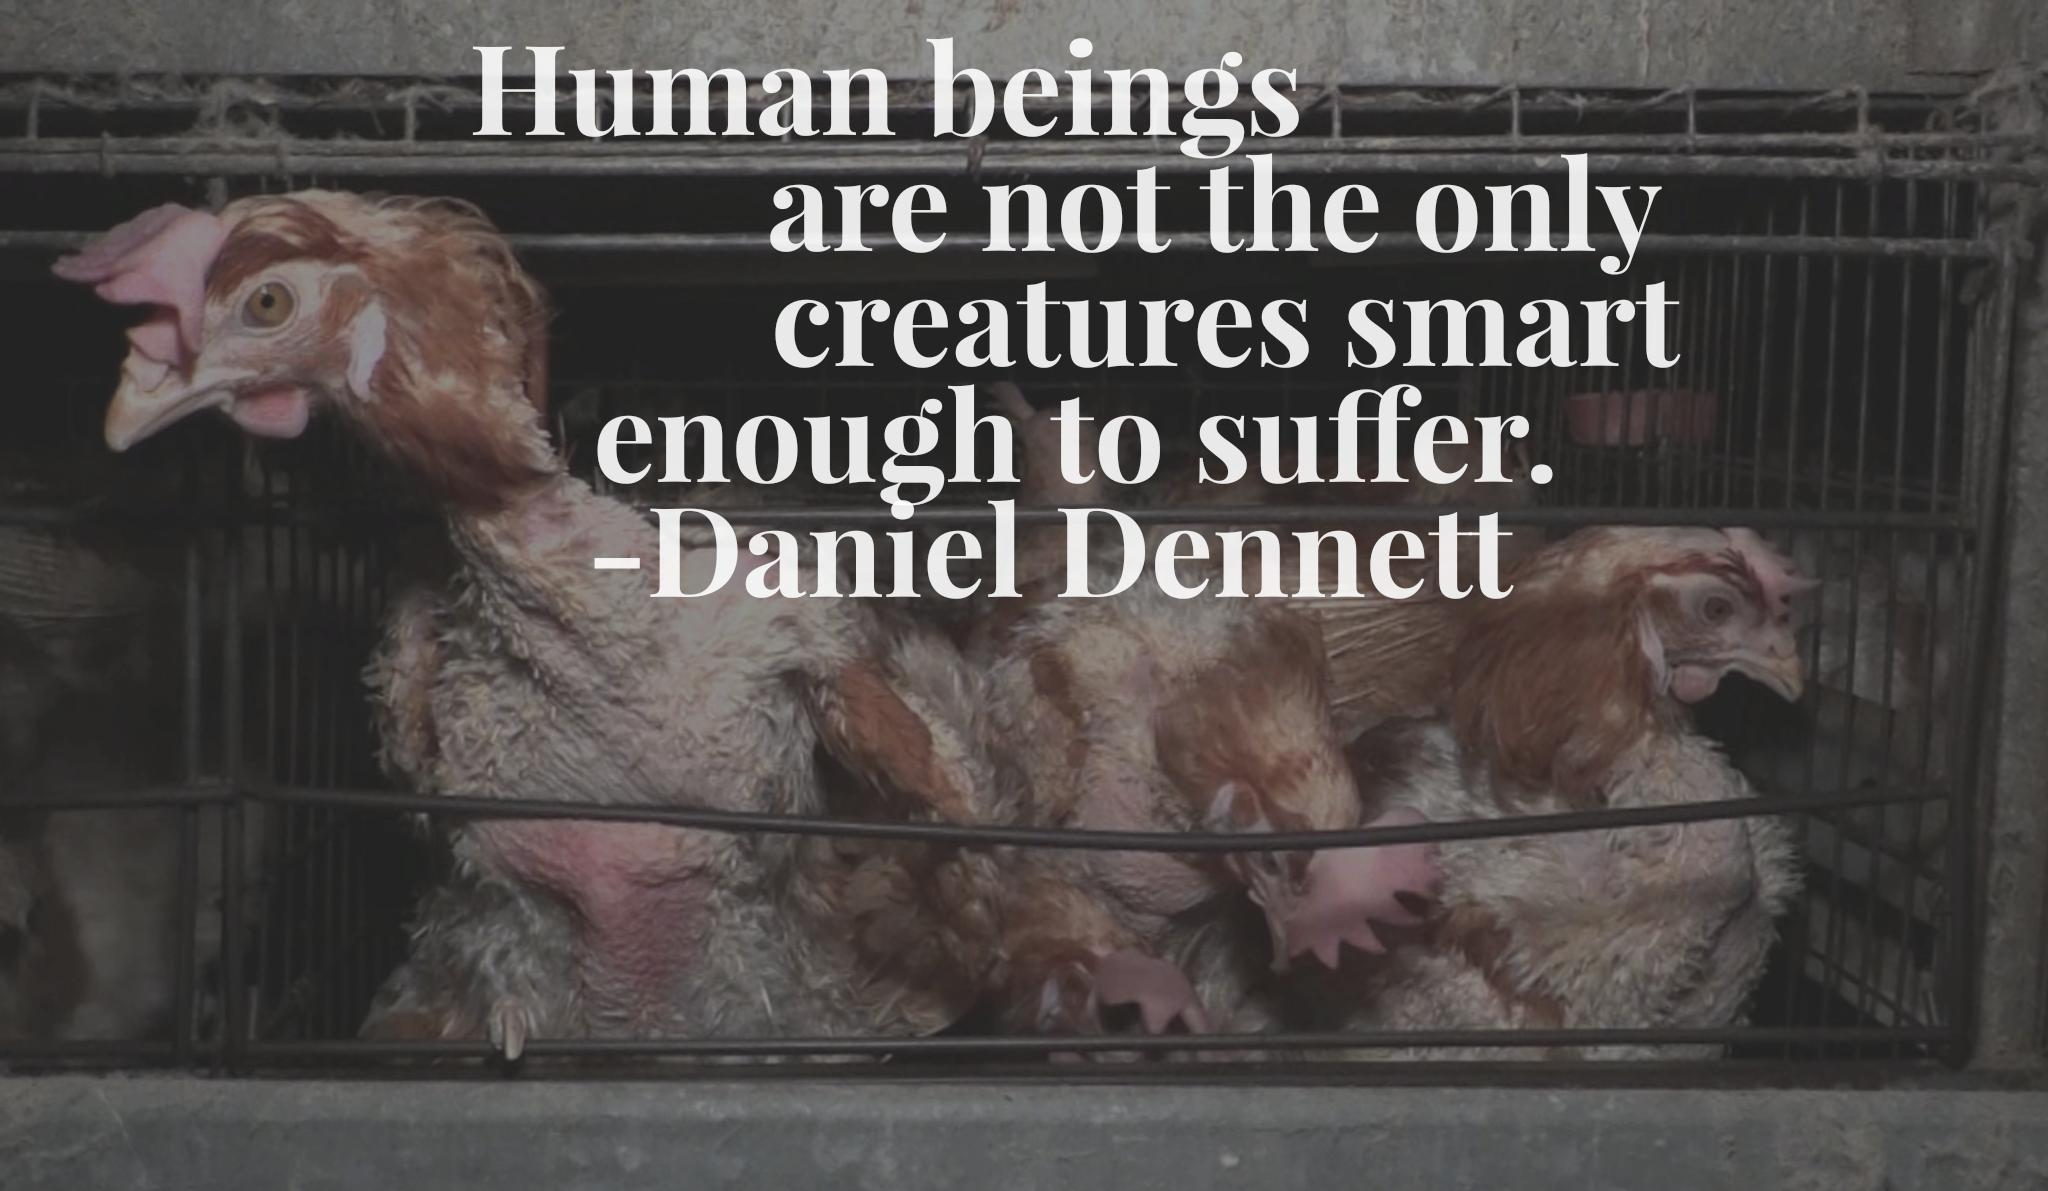 """Human beings are not the only creatures smart enough to suffer."" -Daniel Dennett [2048×1191][OC]"